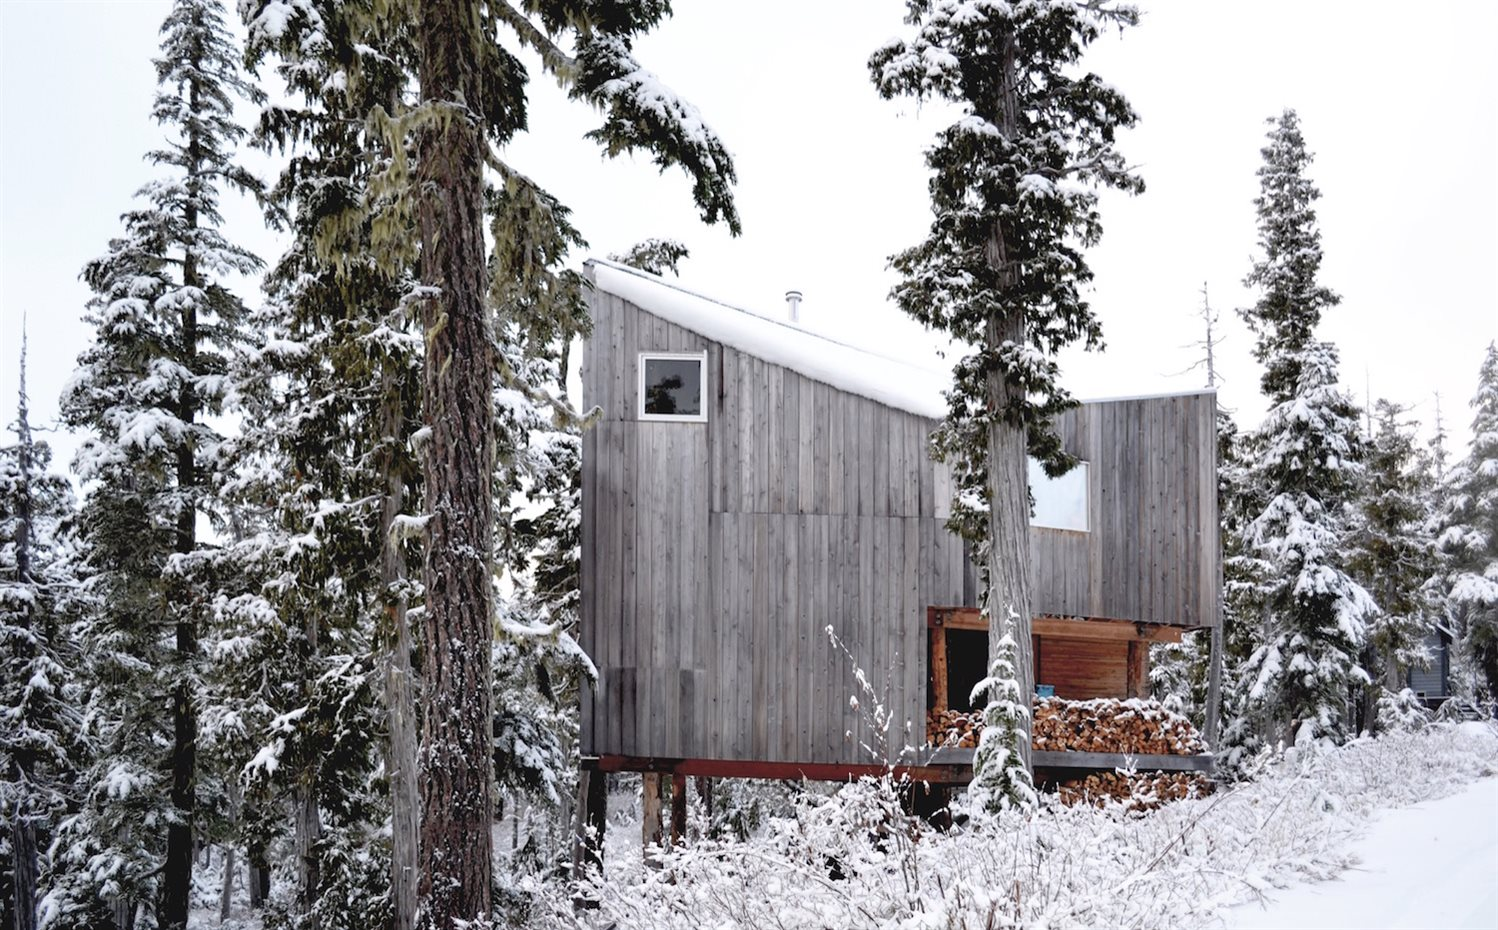 Scott-and-Scott-Architects-Alpine-Cabin-EXTERIOR-SIDE. [04] Reservada para amantes del 'snowboard'